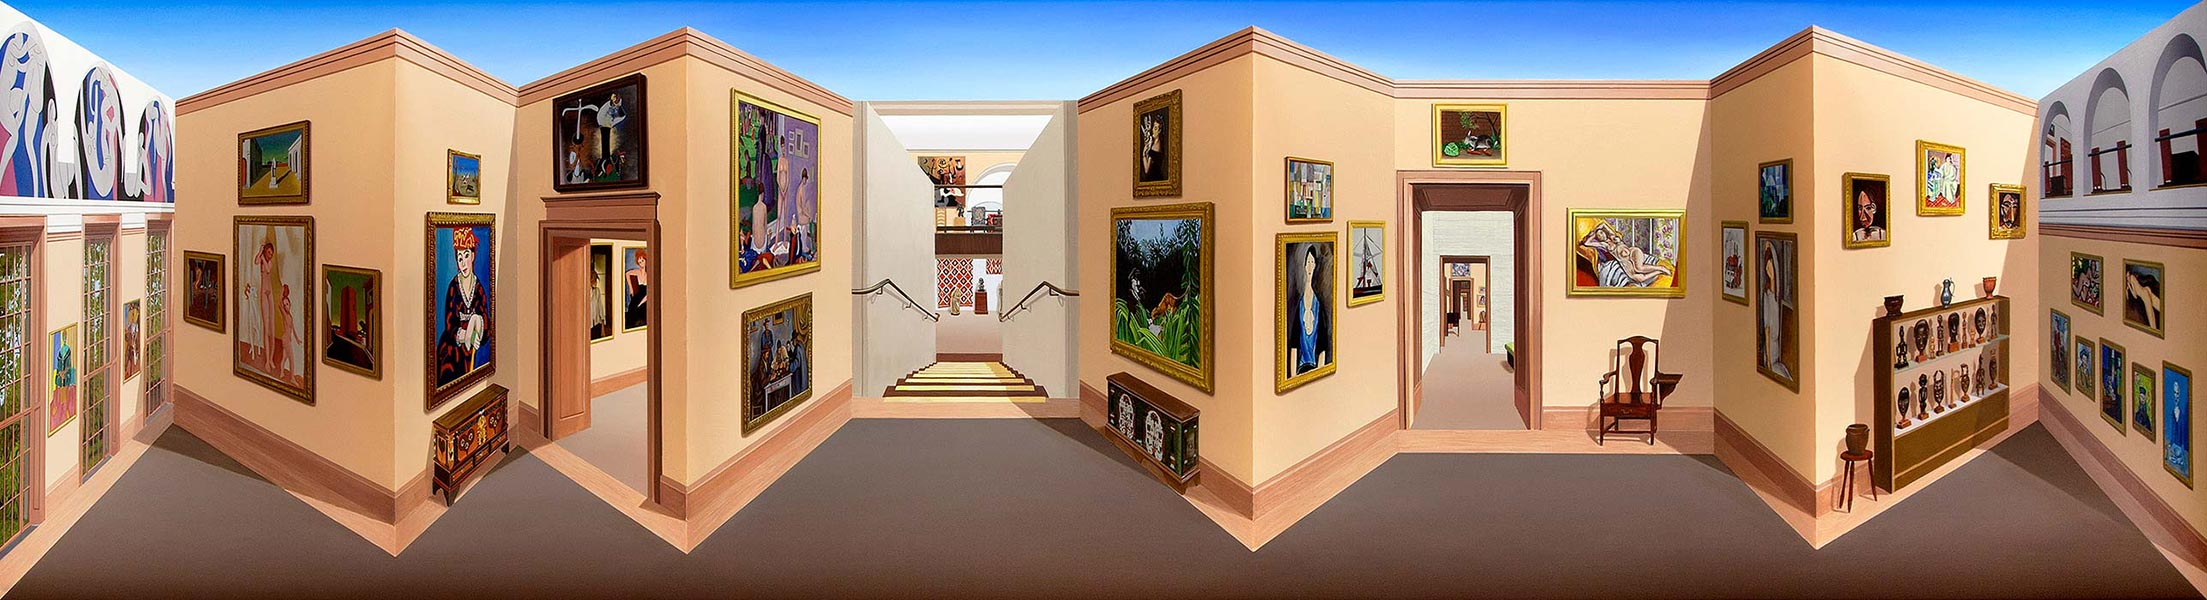 The Barnes Foundation <p>2016 | 60.5 x 160 x 25 cm / 23⅞ x 63 x 9⅞ in</p>